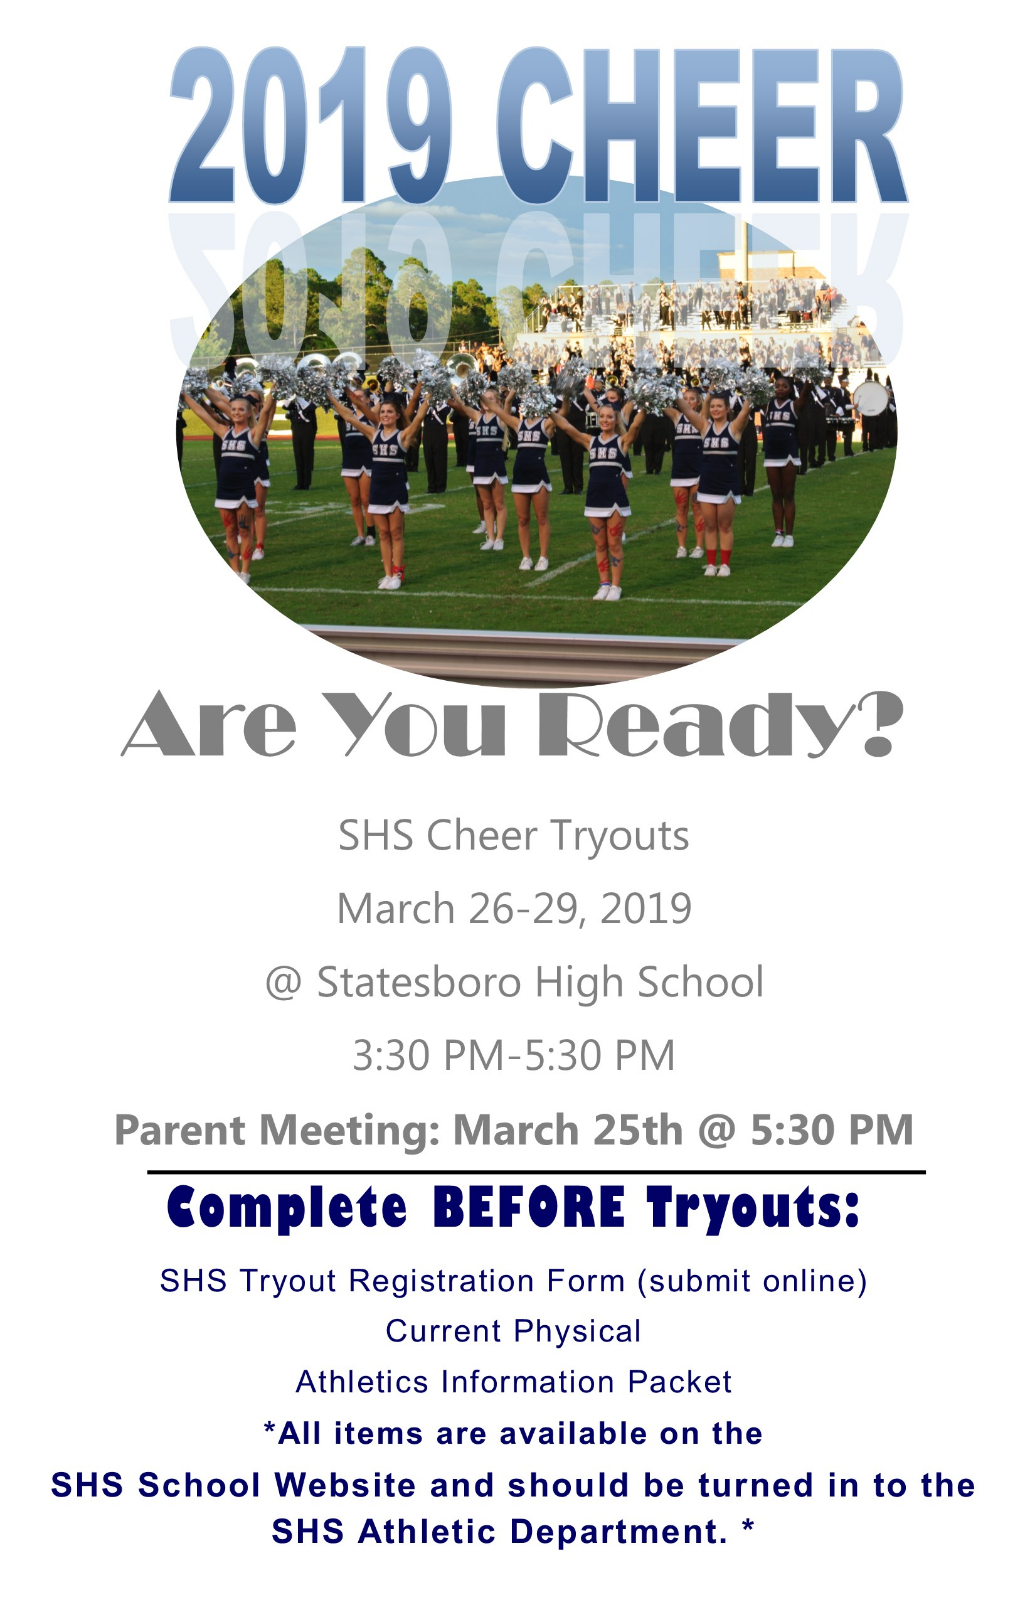 2019 Cheer Tryout Info Announced